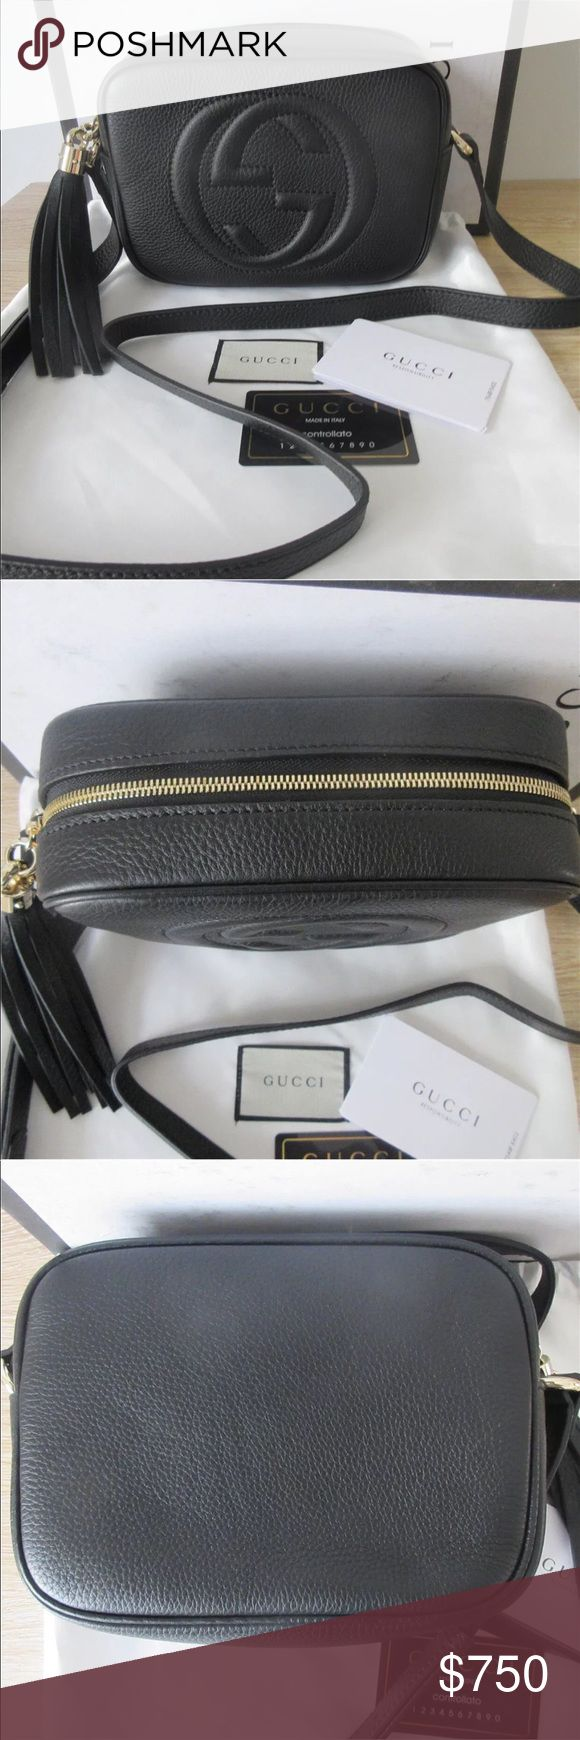 Black Gucci Soho Disco Bag 100% Authentic 🔸 We are a very negotiable service 🔸 We provide overnight shipping and express shipping 🔸 Our transactions are made through third party applications 🔸 If you are interested in buying this product please contact us via 646-431-6521 🔸 Gucci Bags Crossbody Bags